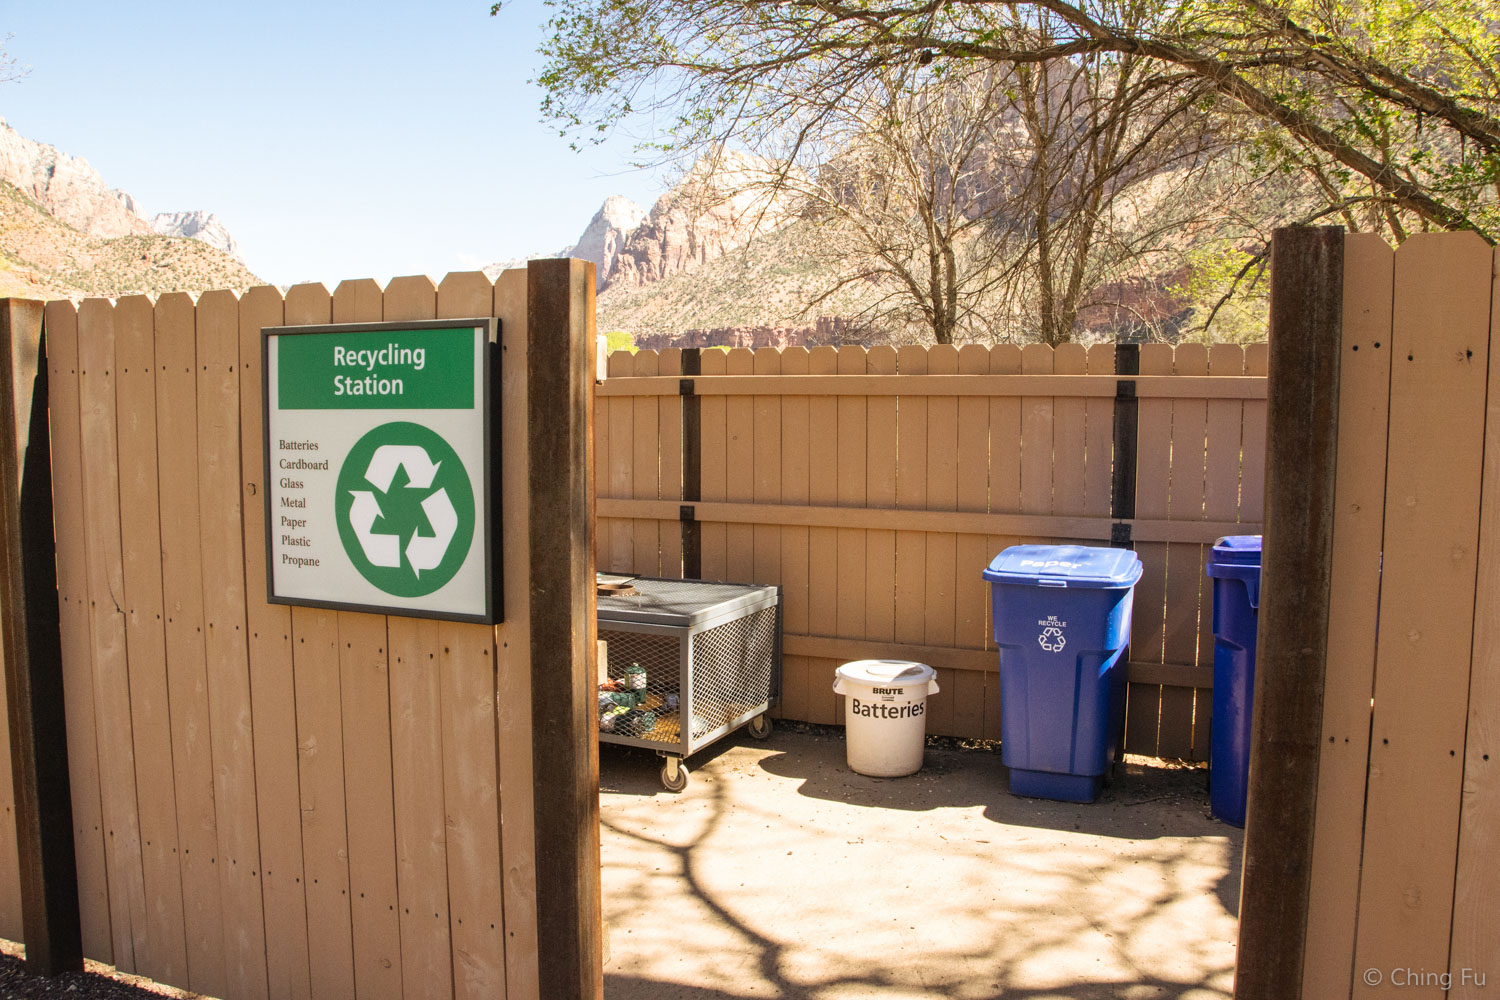 This was the recycling center at Zion National Park.